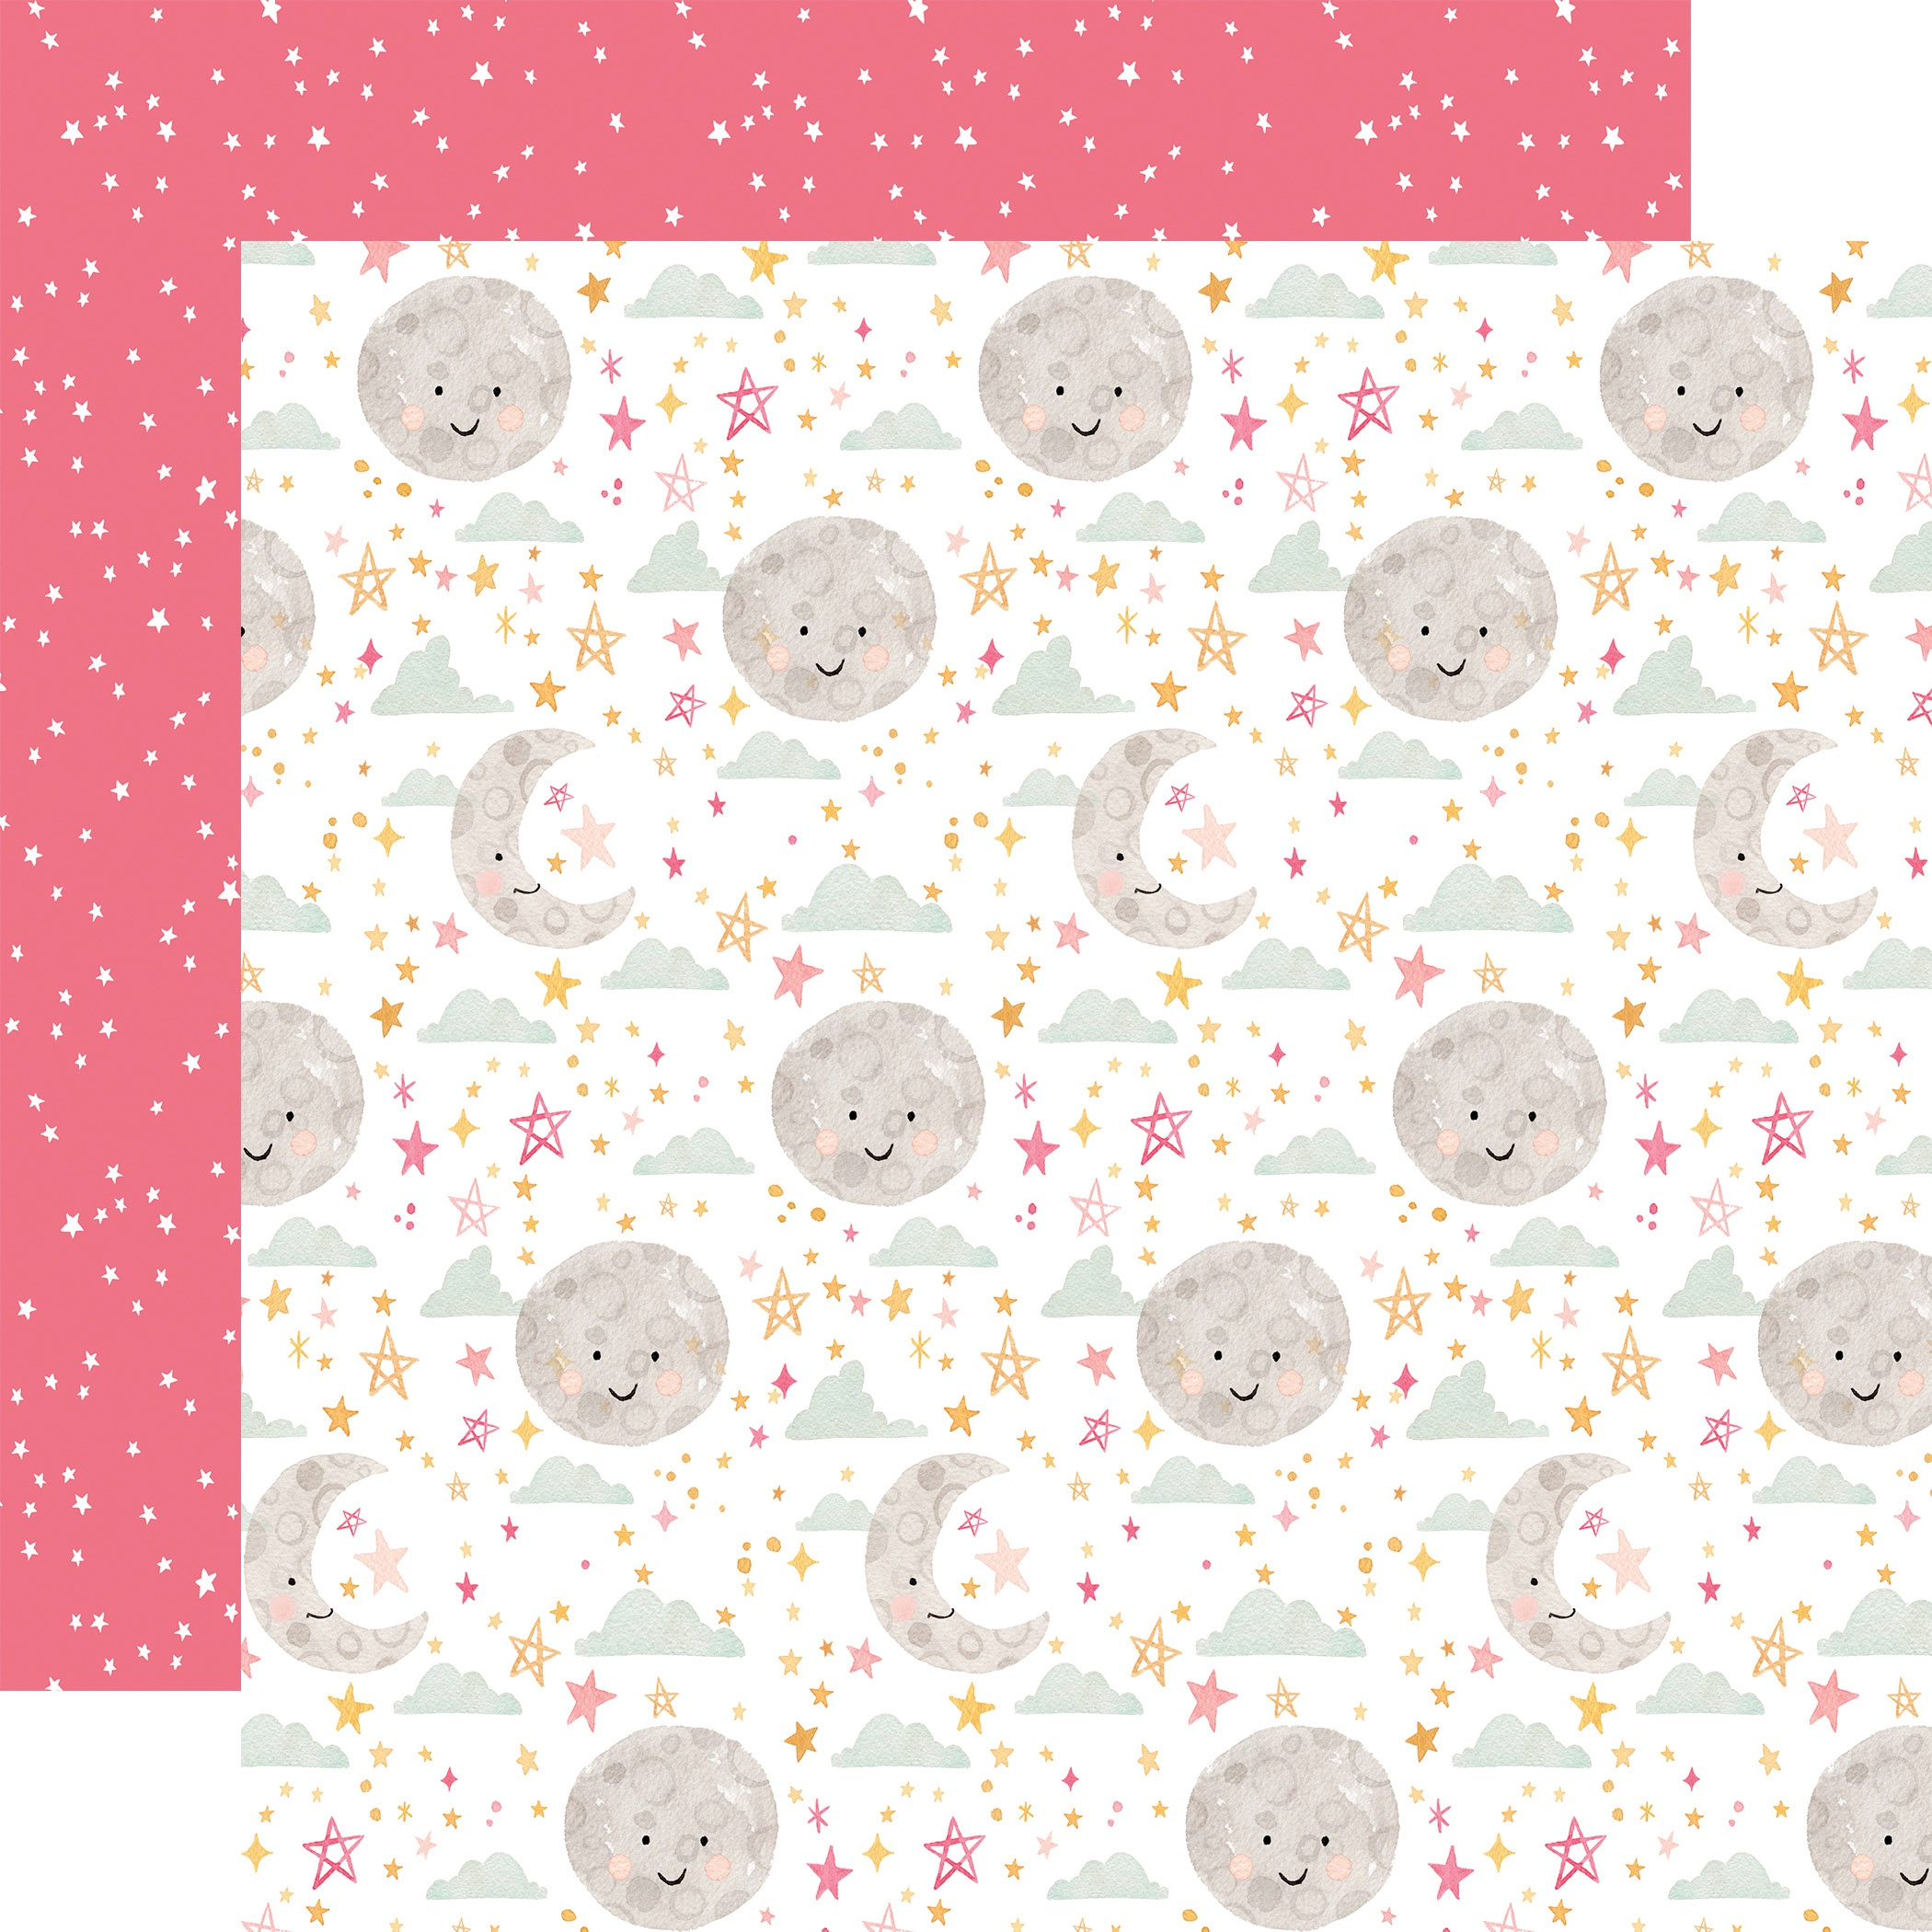 Echo Park - Welcome Baby Girl - MOON AND STARS - 12x12 Double-Sided Paper